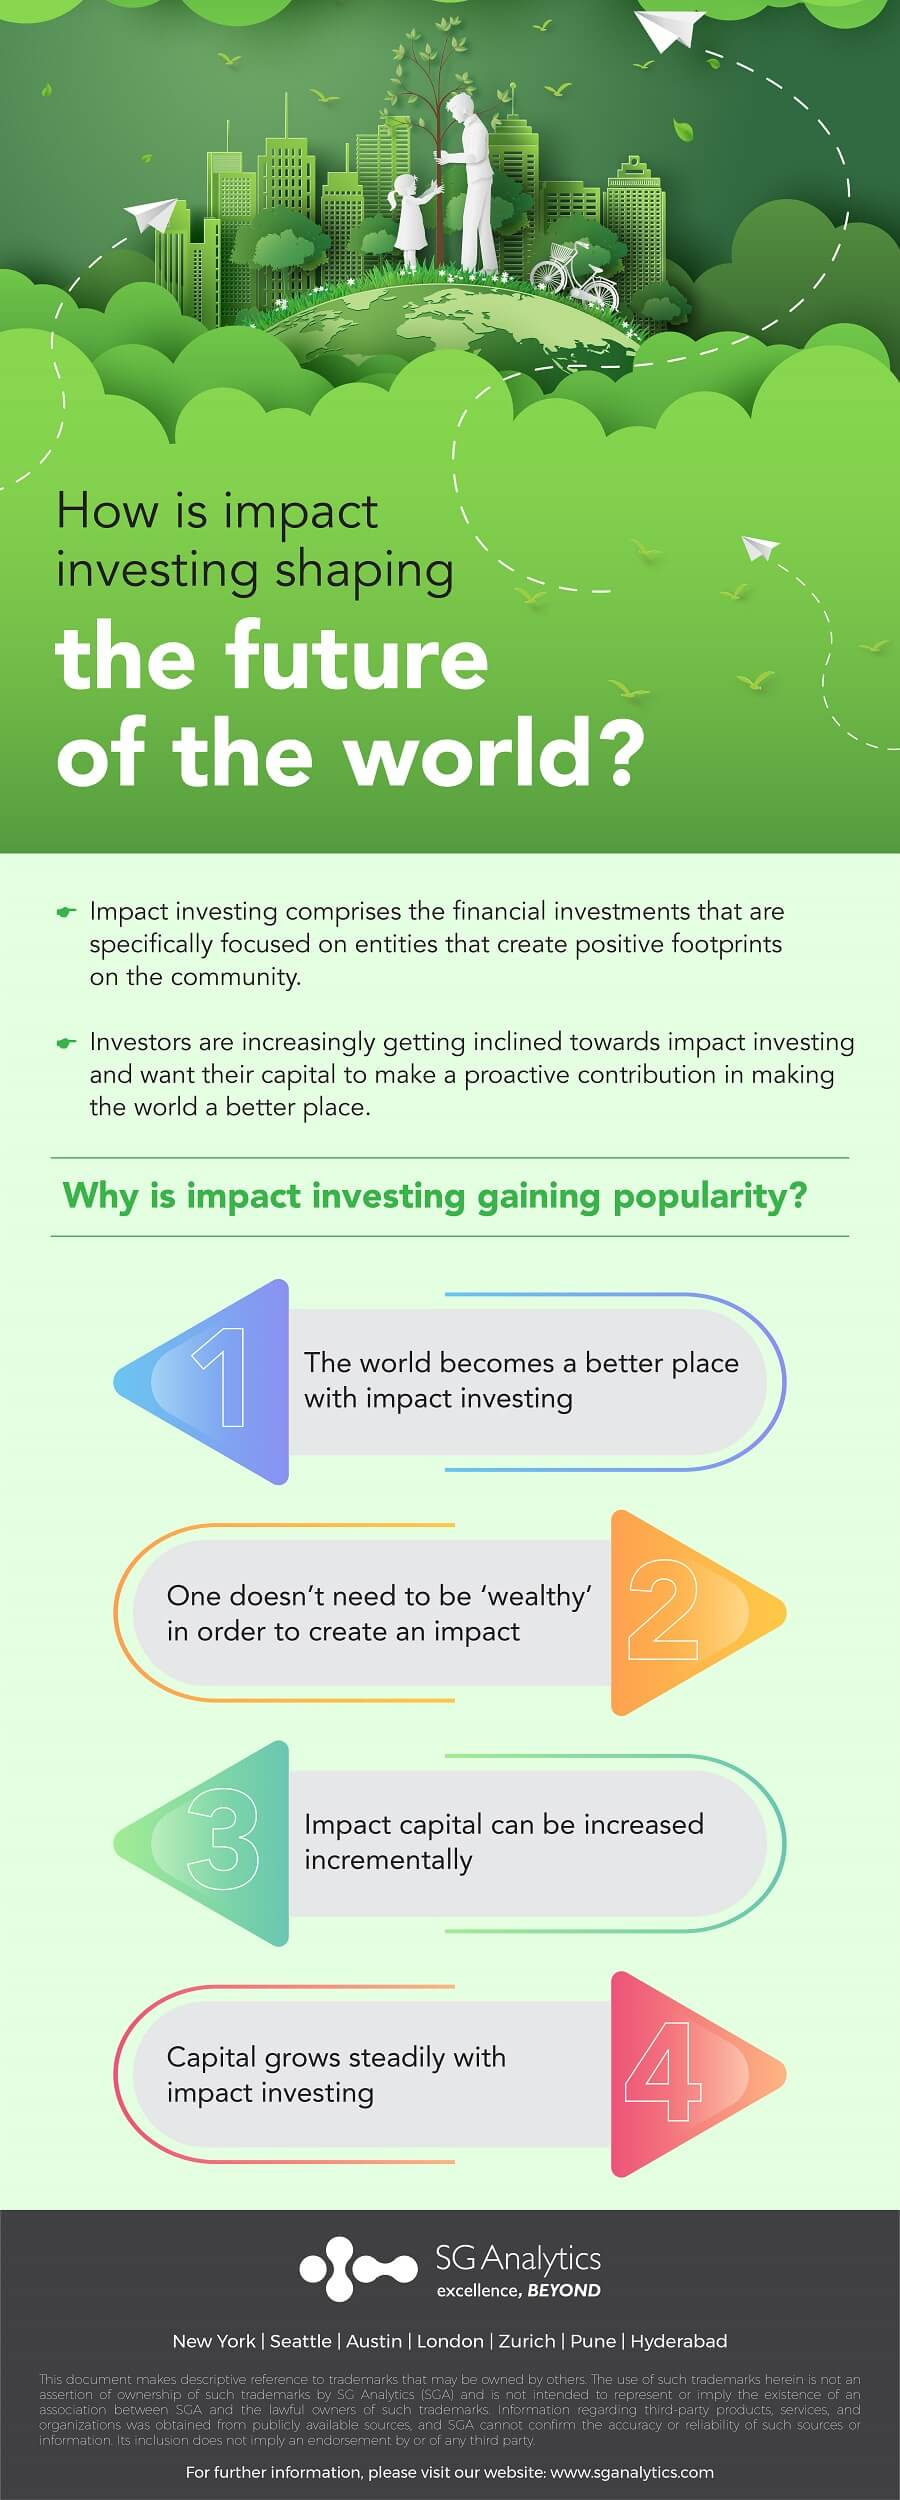 Impact investing market size is $715 billion: What is the future of our planet?